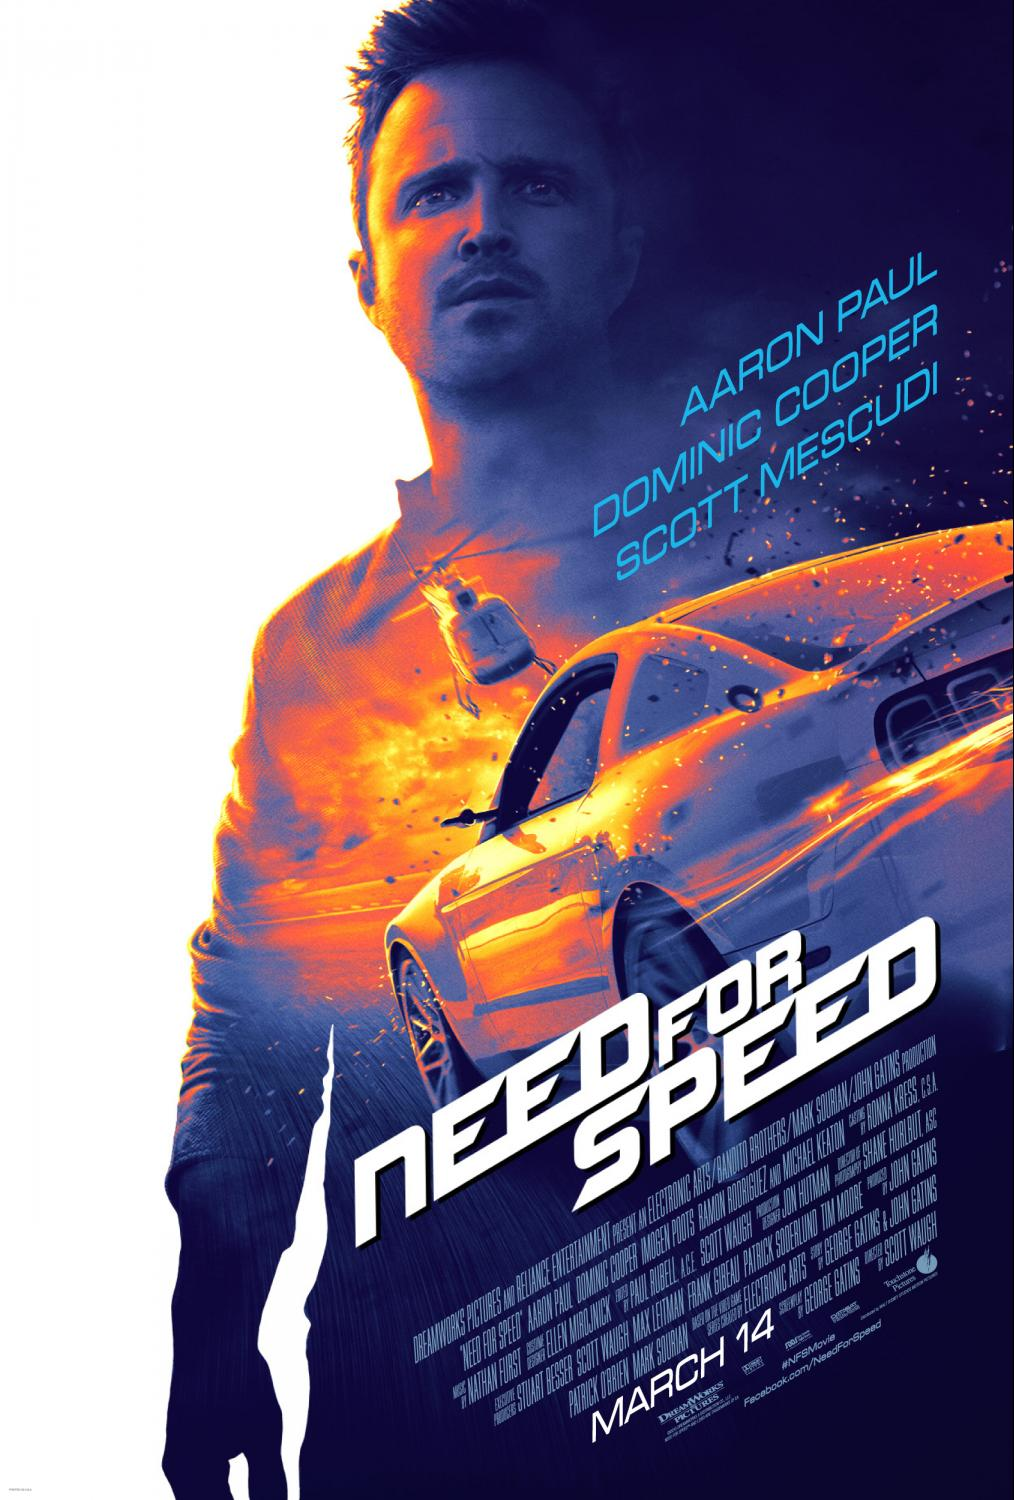 Need for Speed Gains Traction with Intro Featurette Need for Speed Gains Traction with New Intro Featurette